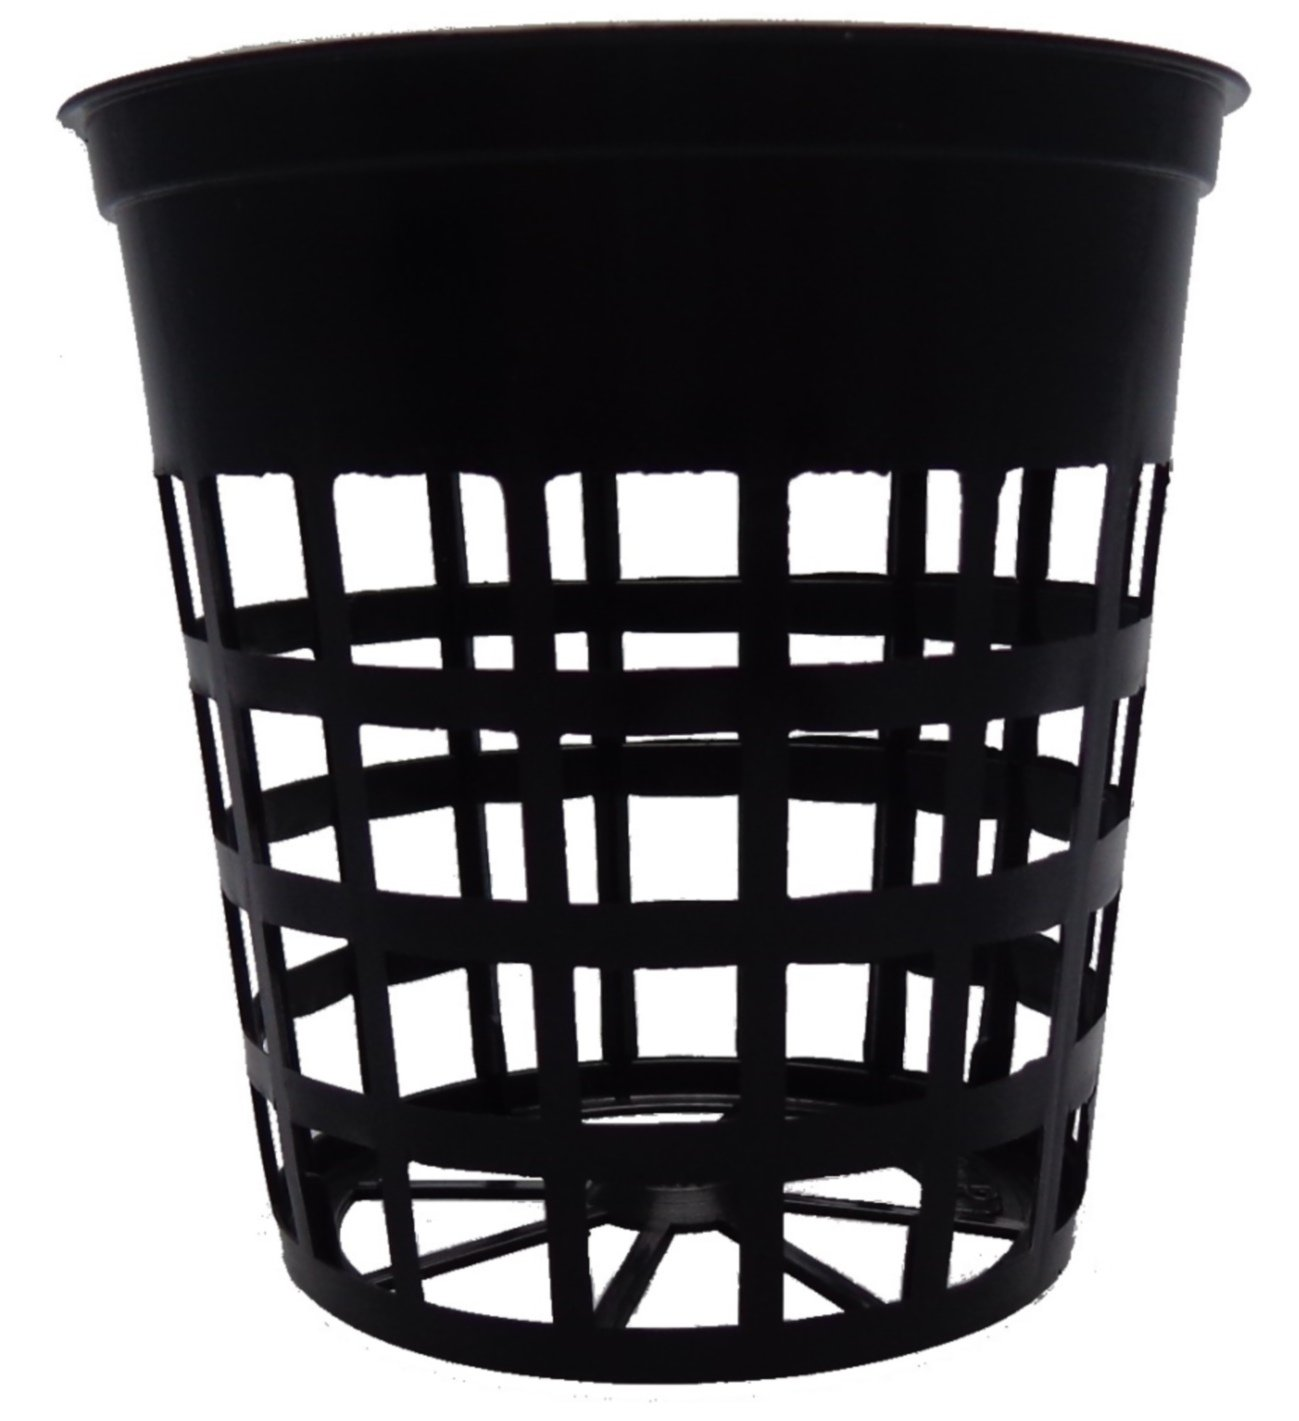 30 Pack - 3 Inch Net Slit Pots for Hydroponic - Aeroponic - Orchid